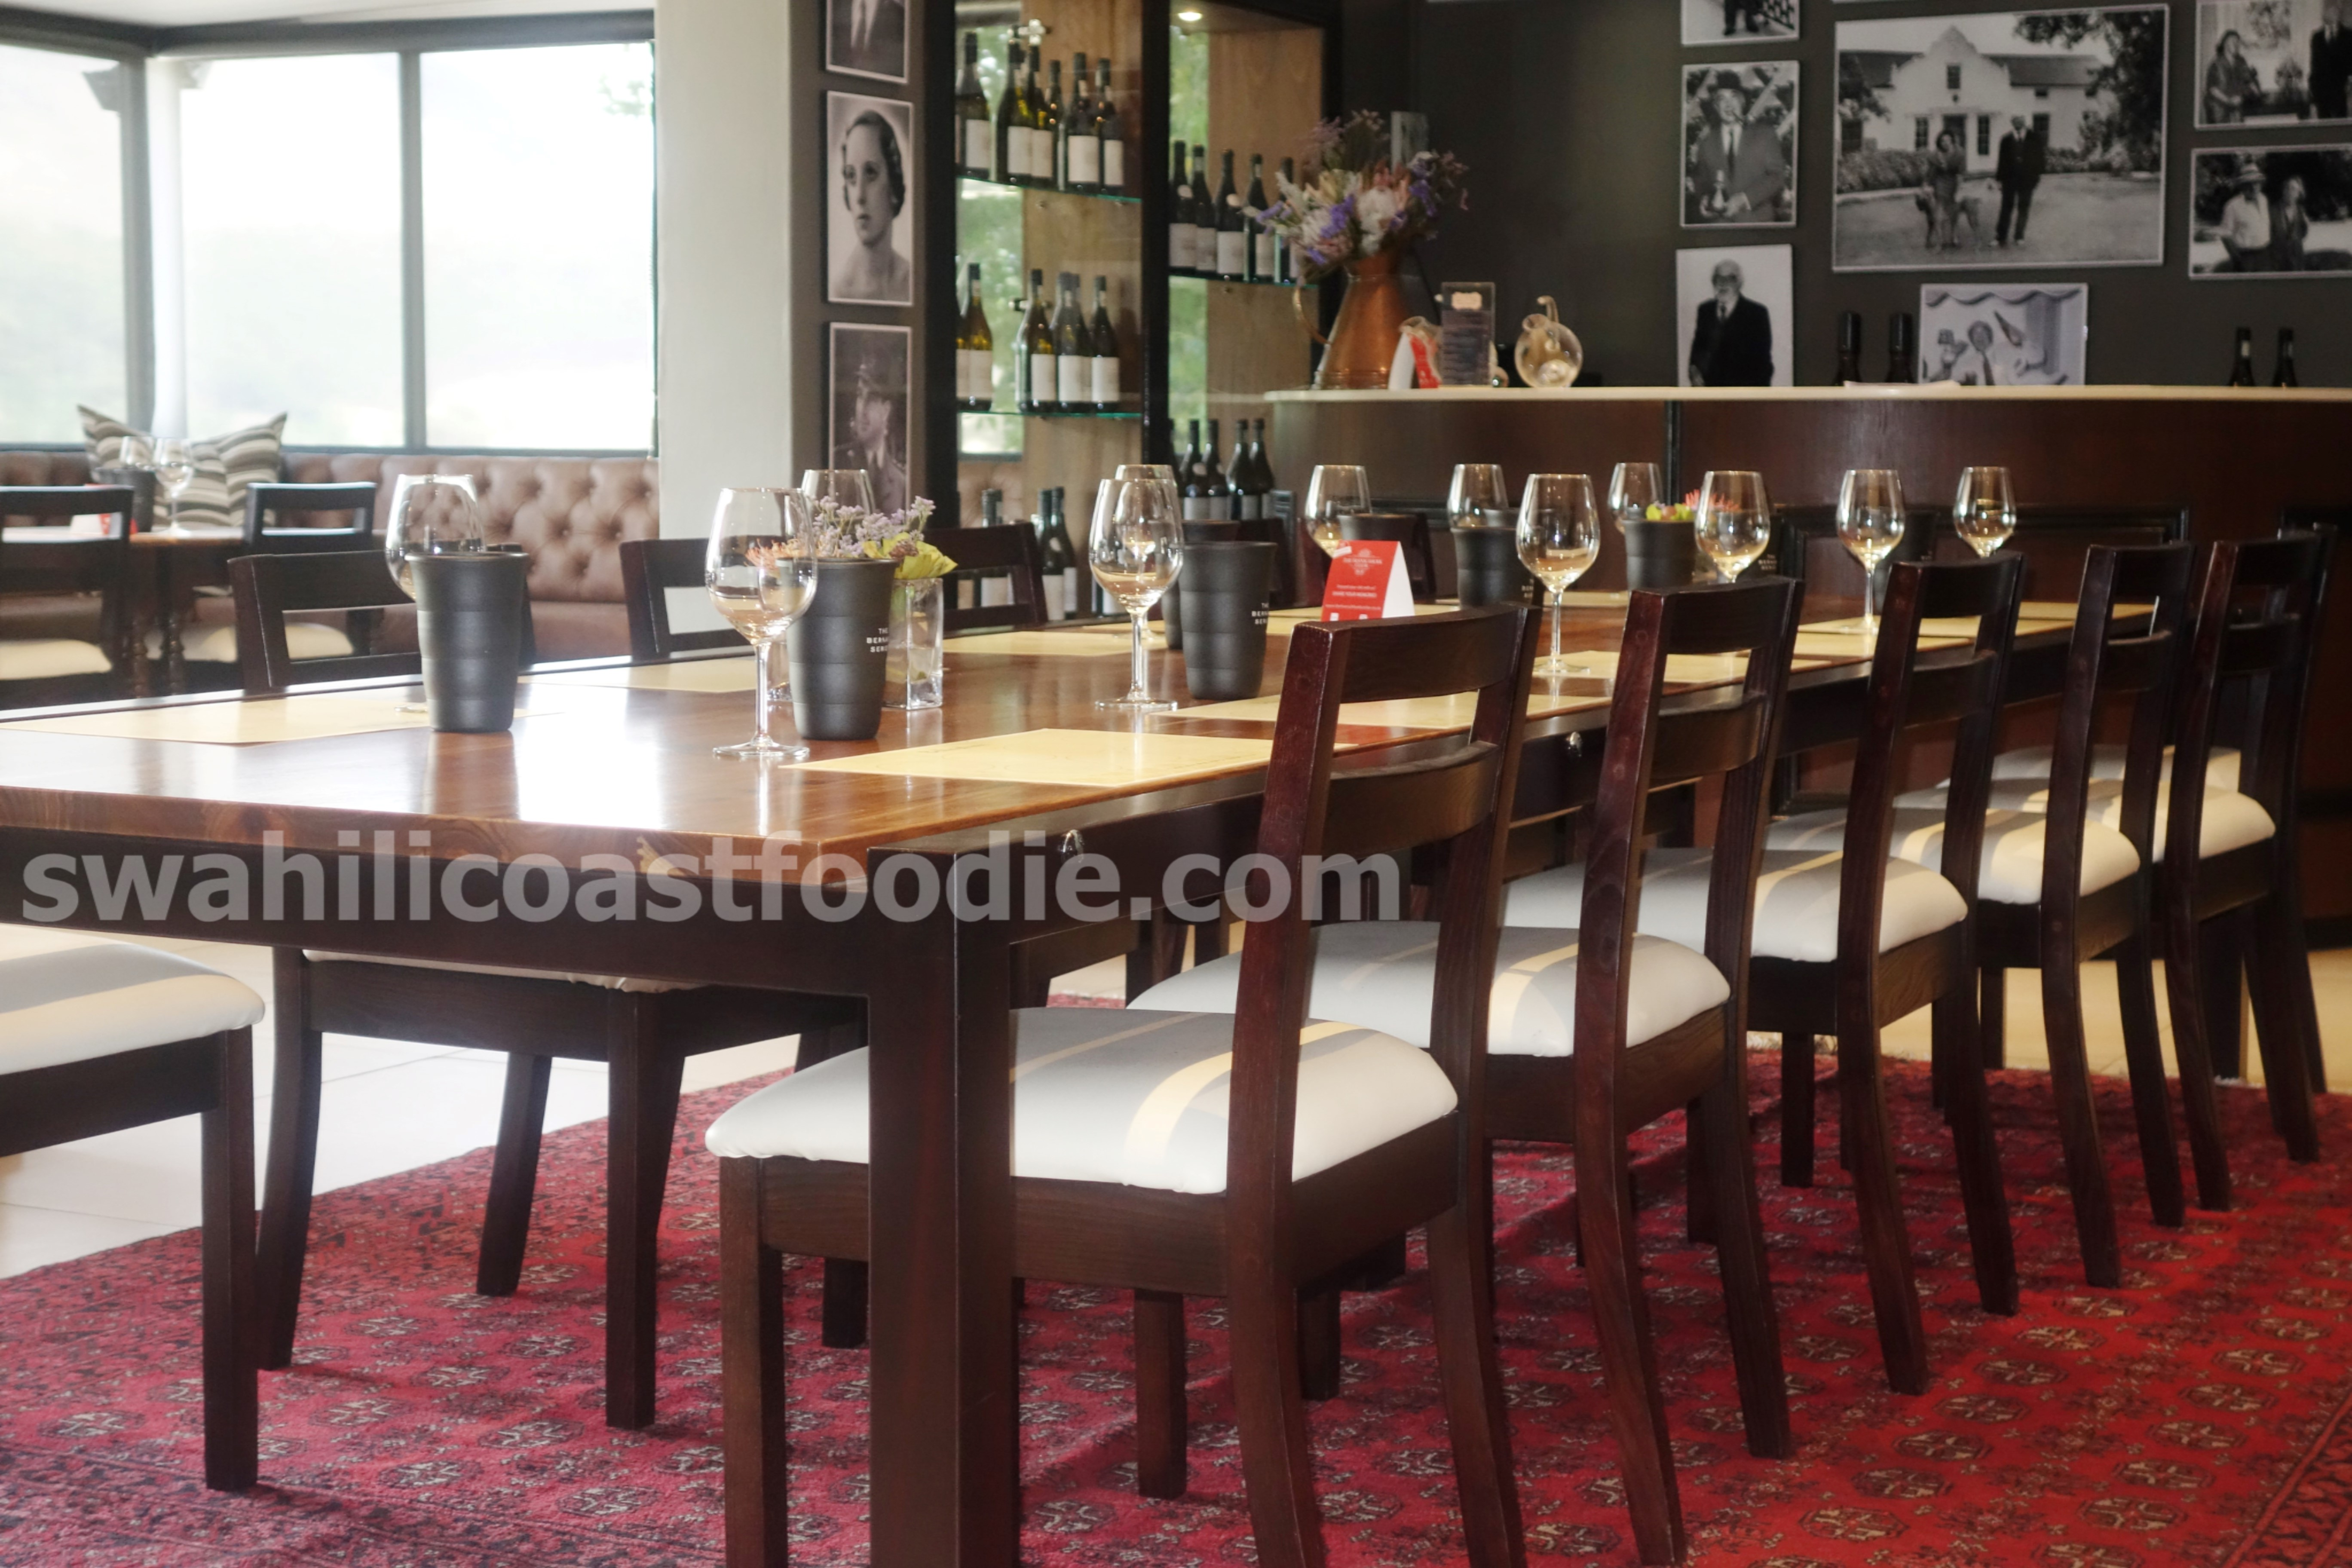 wine-tasting-at-franschhoek-cellar-4-watermark